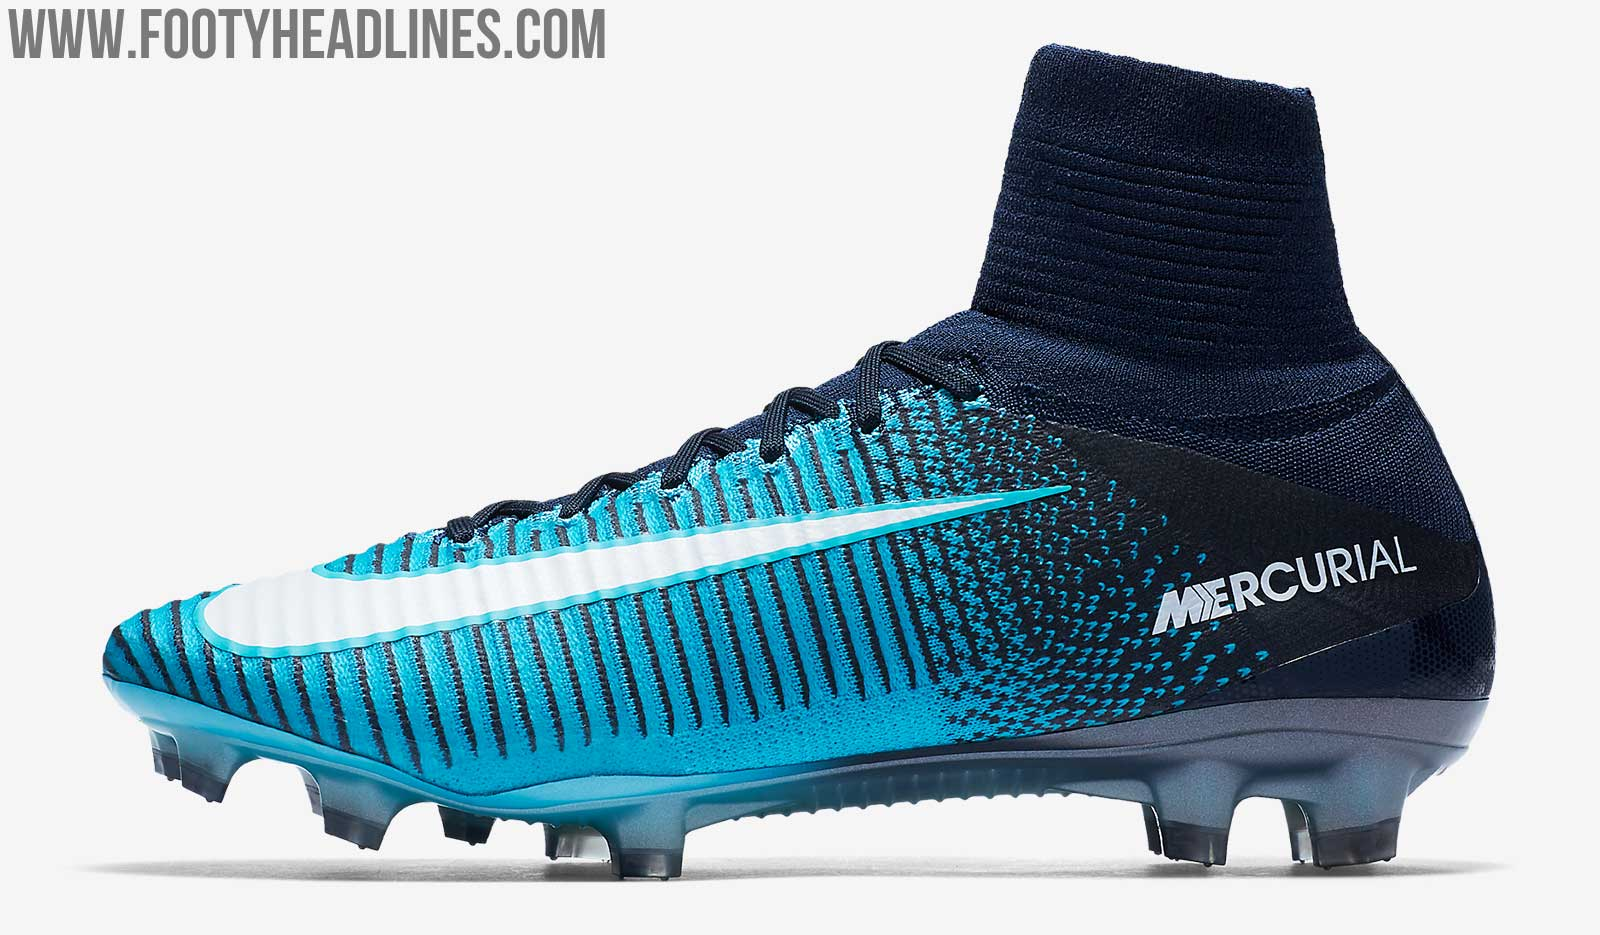 This image shows the turquoise Ice Pack colorway for the Nike Mercurial  Superfly V football boot.